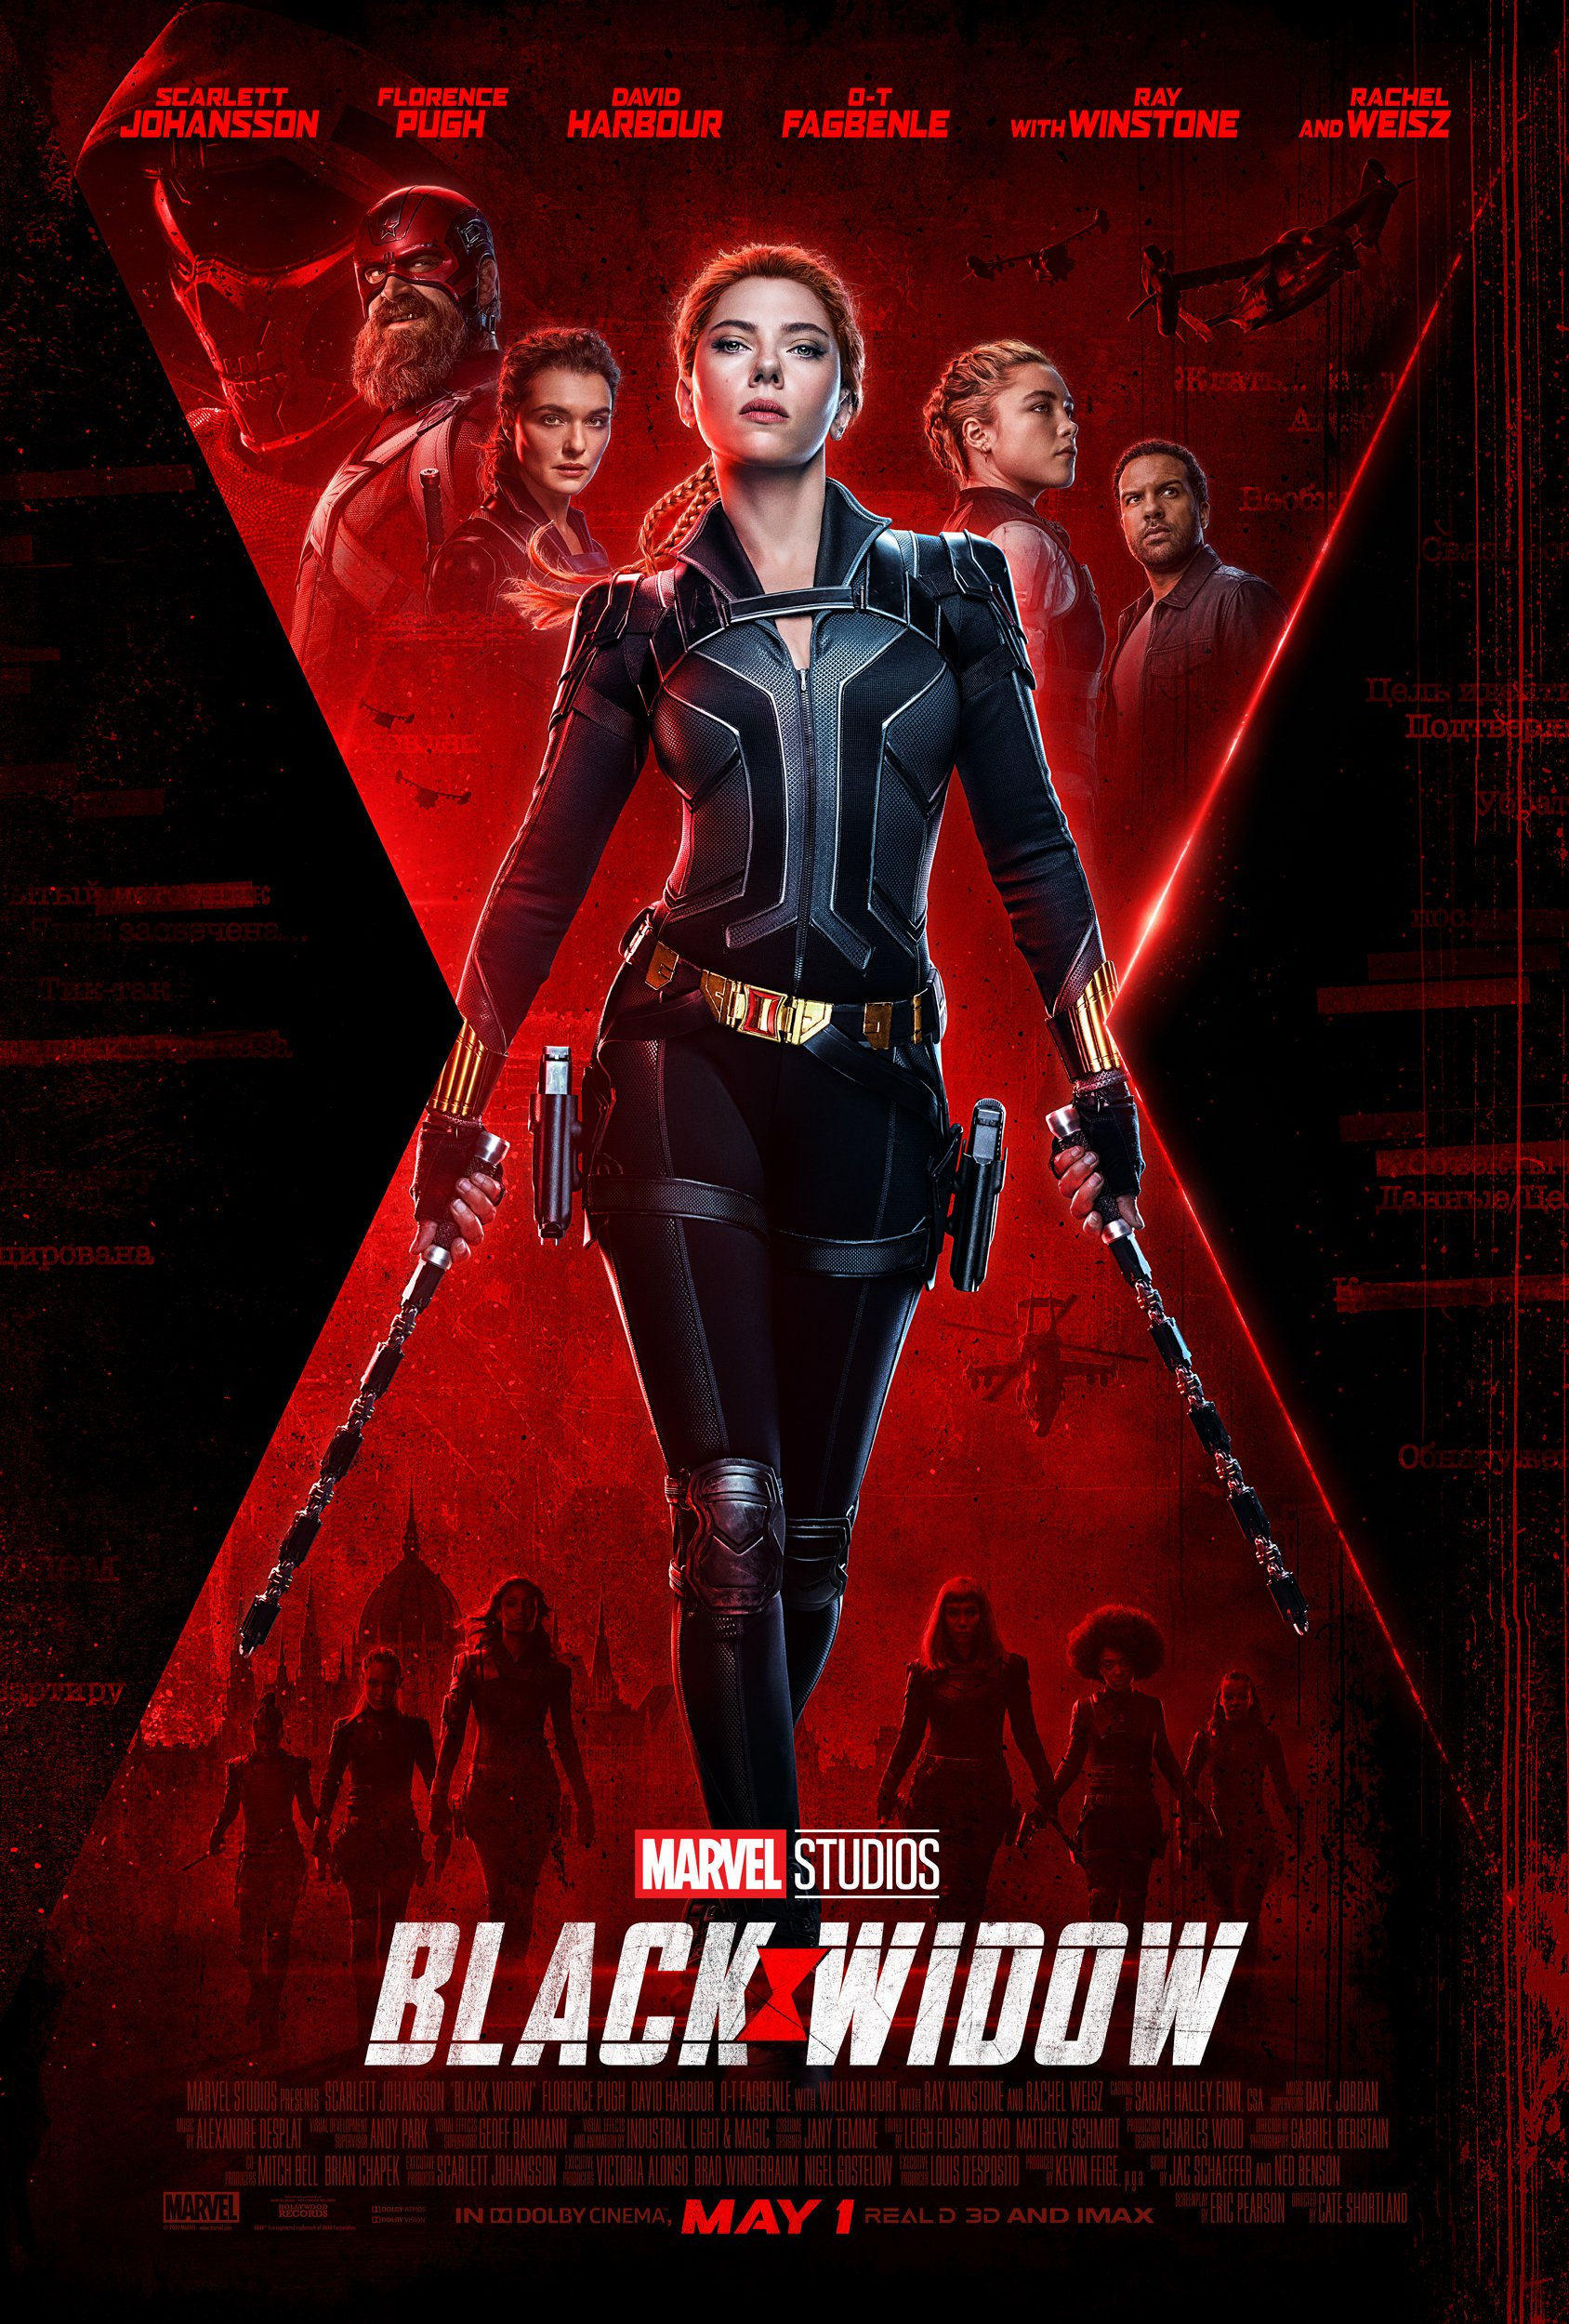 Marvel Studios' Black Widow